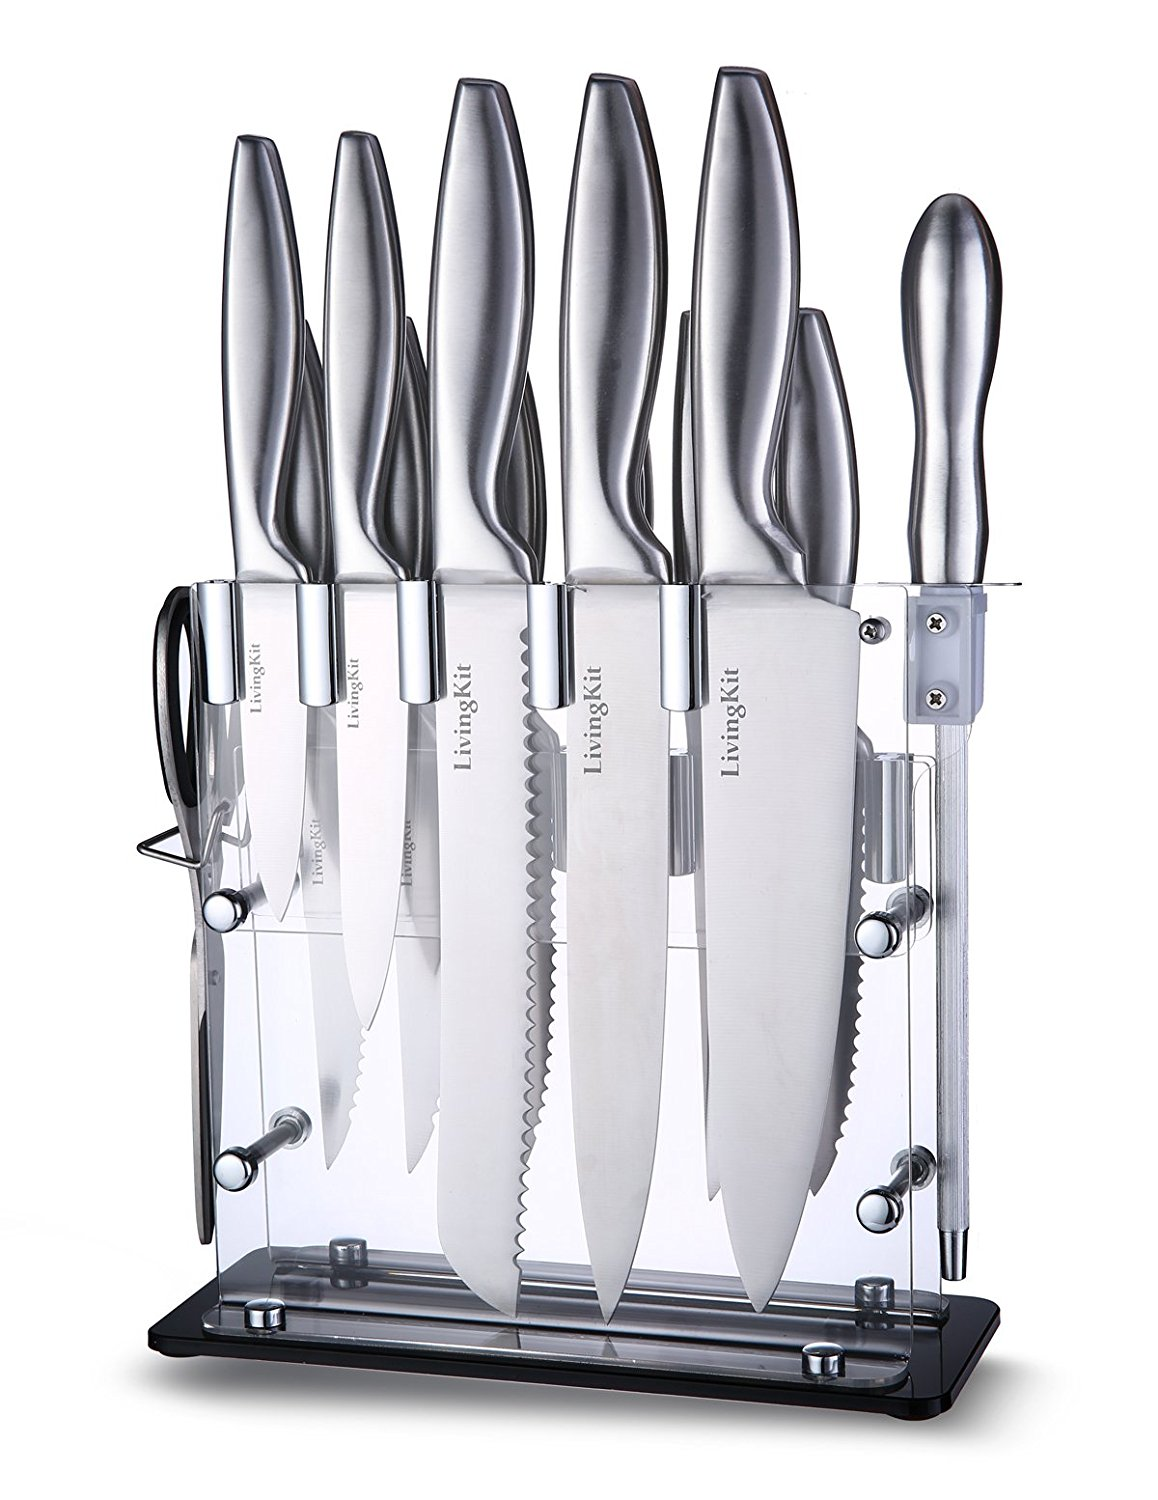 livingkit knife set with wooden block high durability stainless  - modernity knife sets simple design  modern knife block made with theacrylic glass material lightweight sturdy durable invisible cutlery setwith